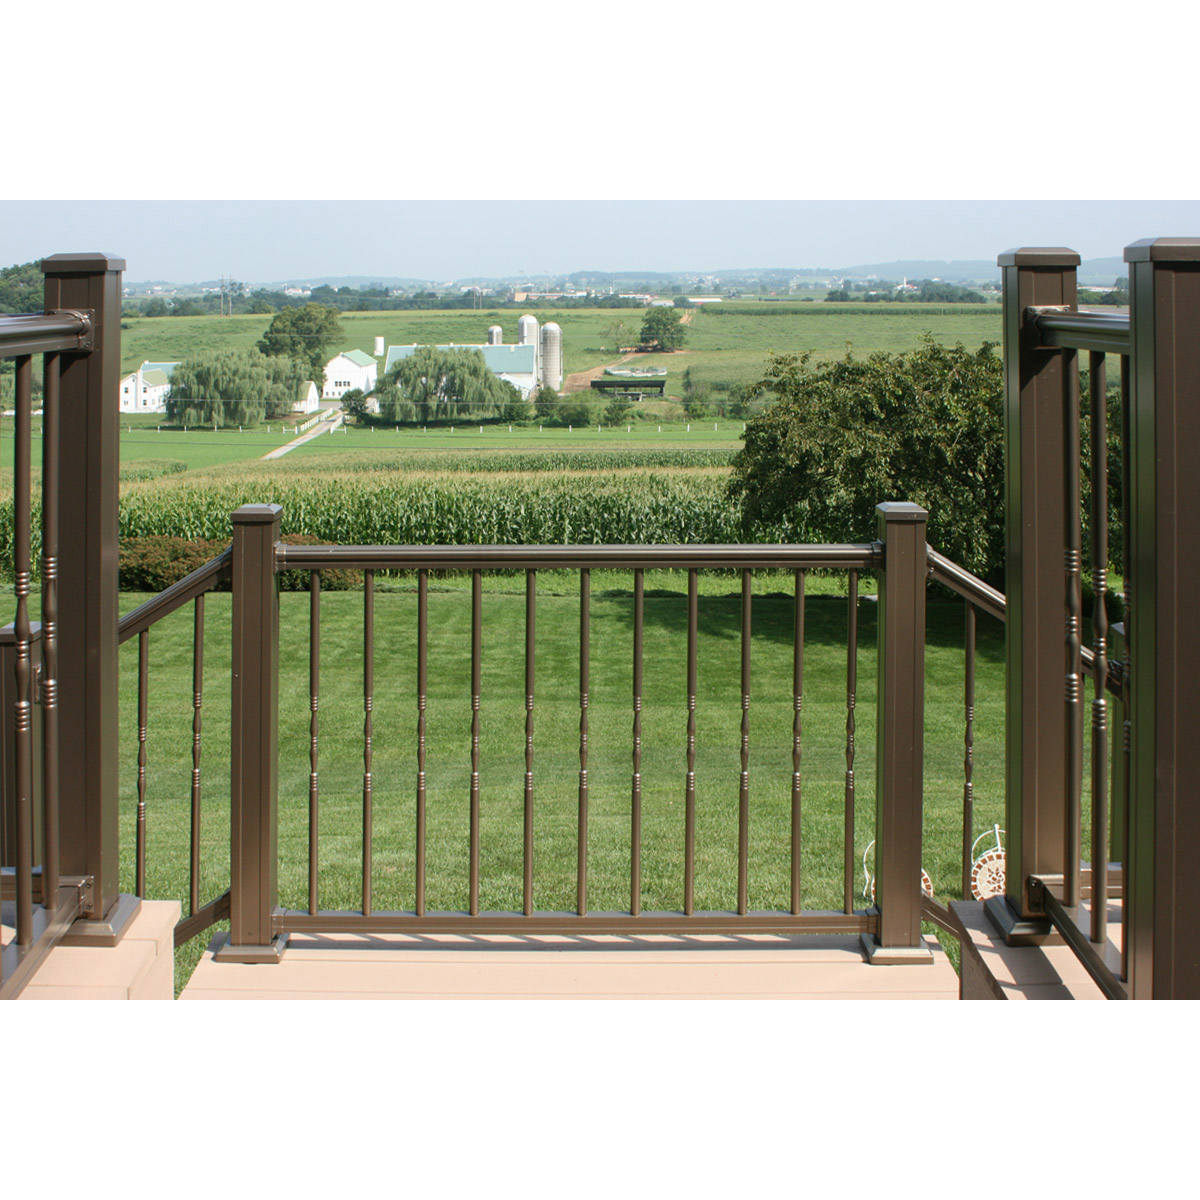 Arabian Railing with Decorative Round Balusters